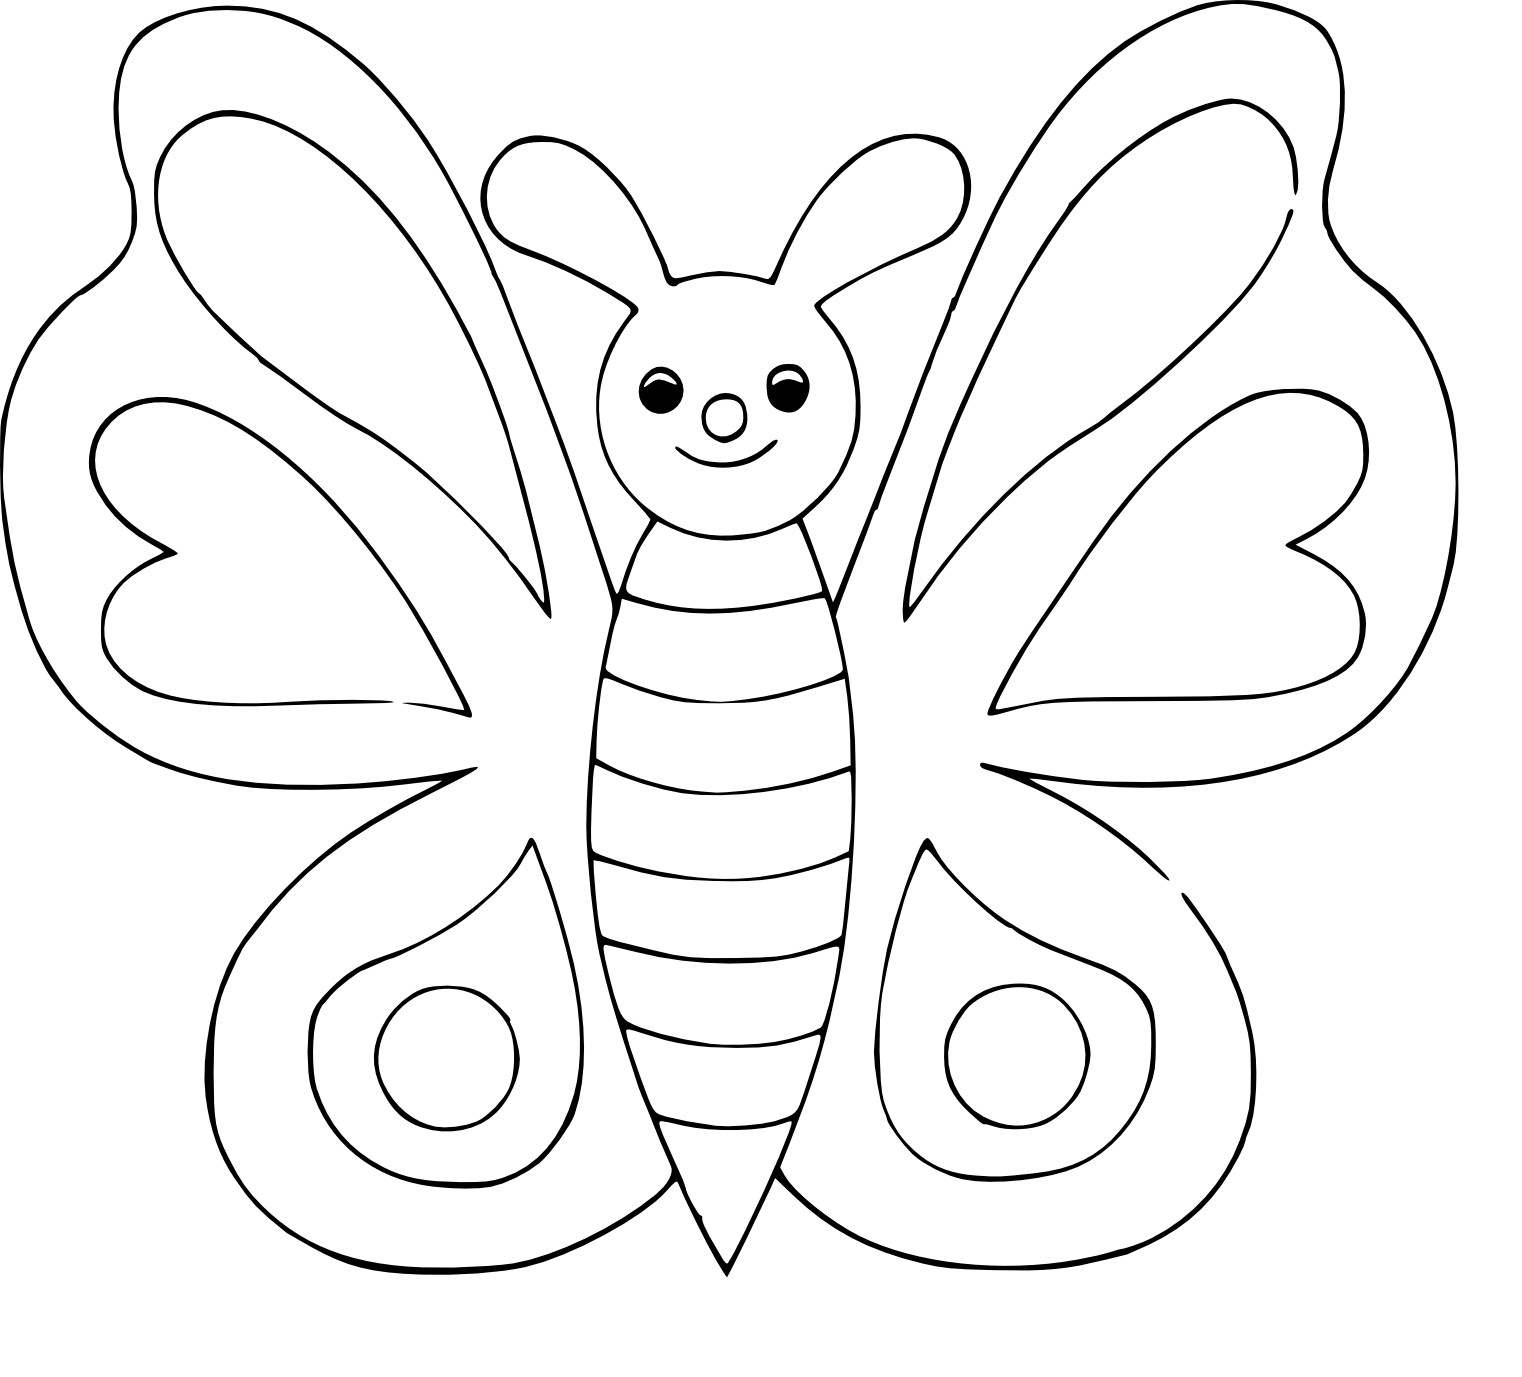 Coloriage papillon simple imprimer - Papillon imprimer ...